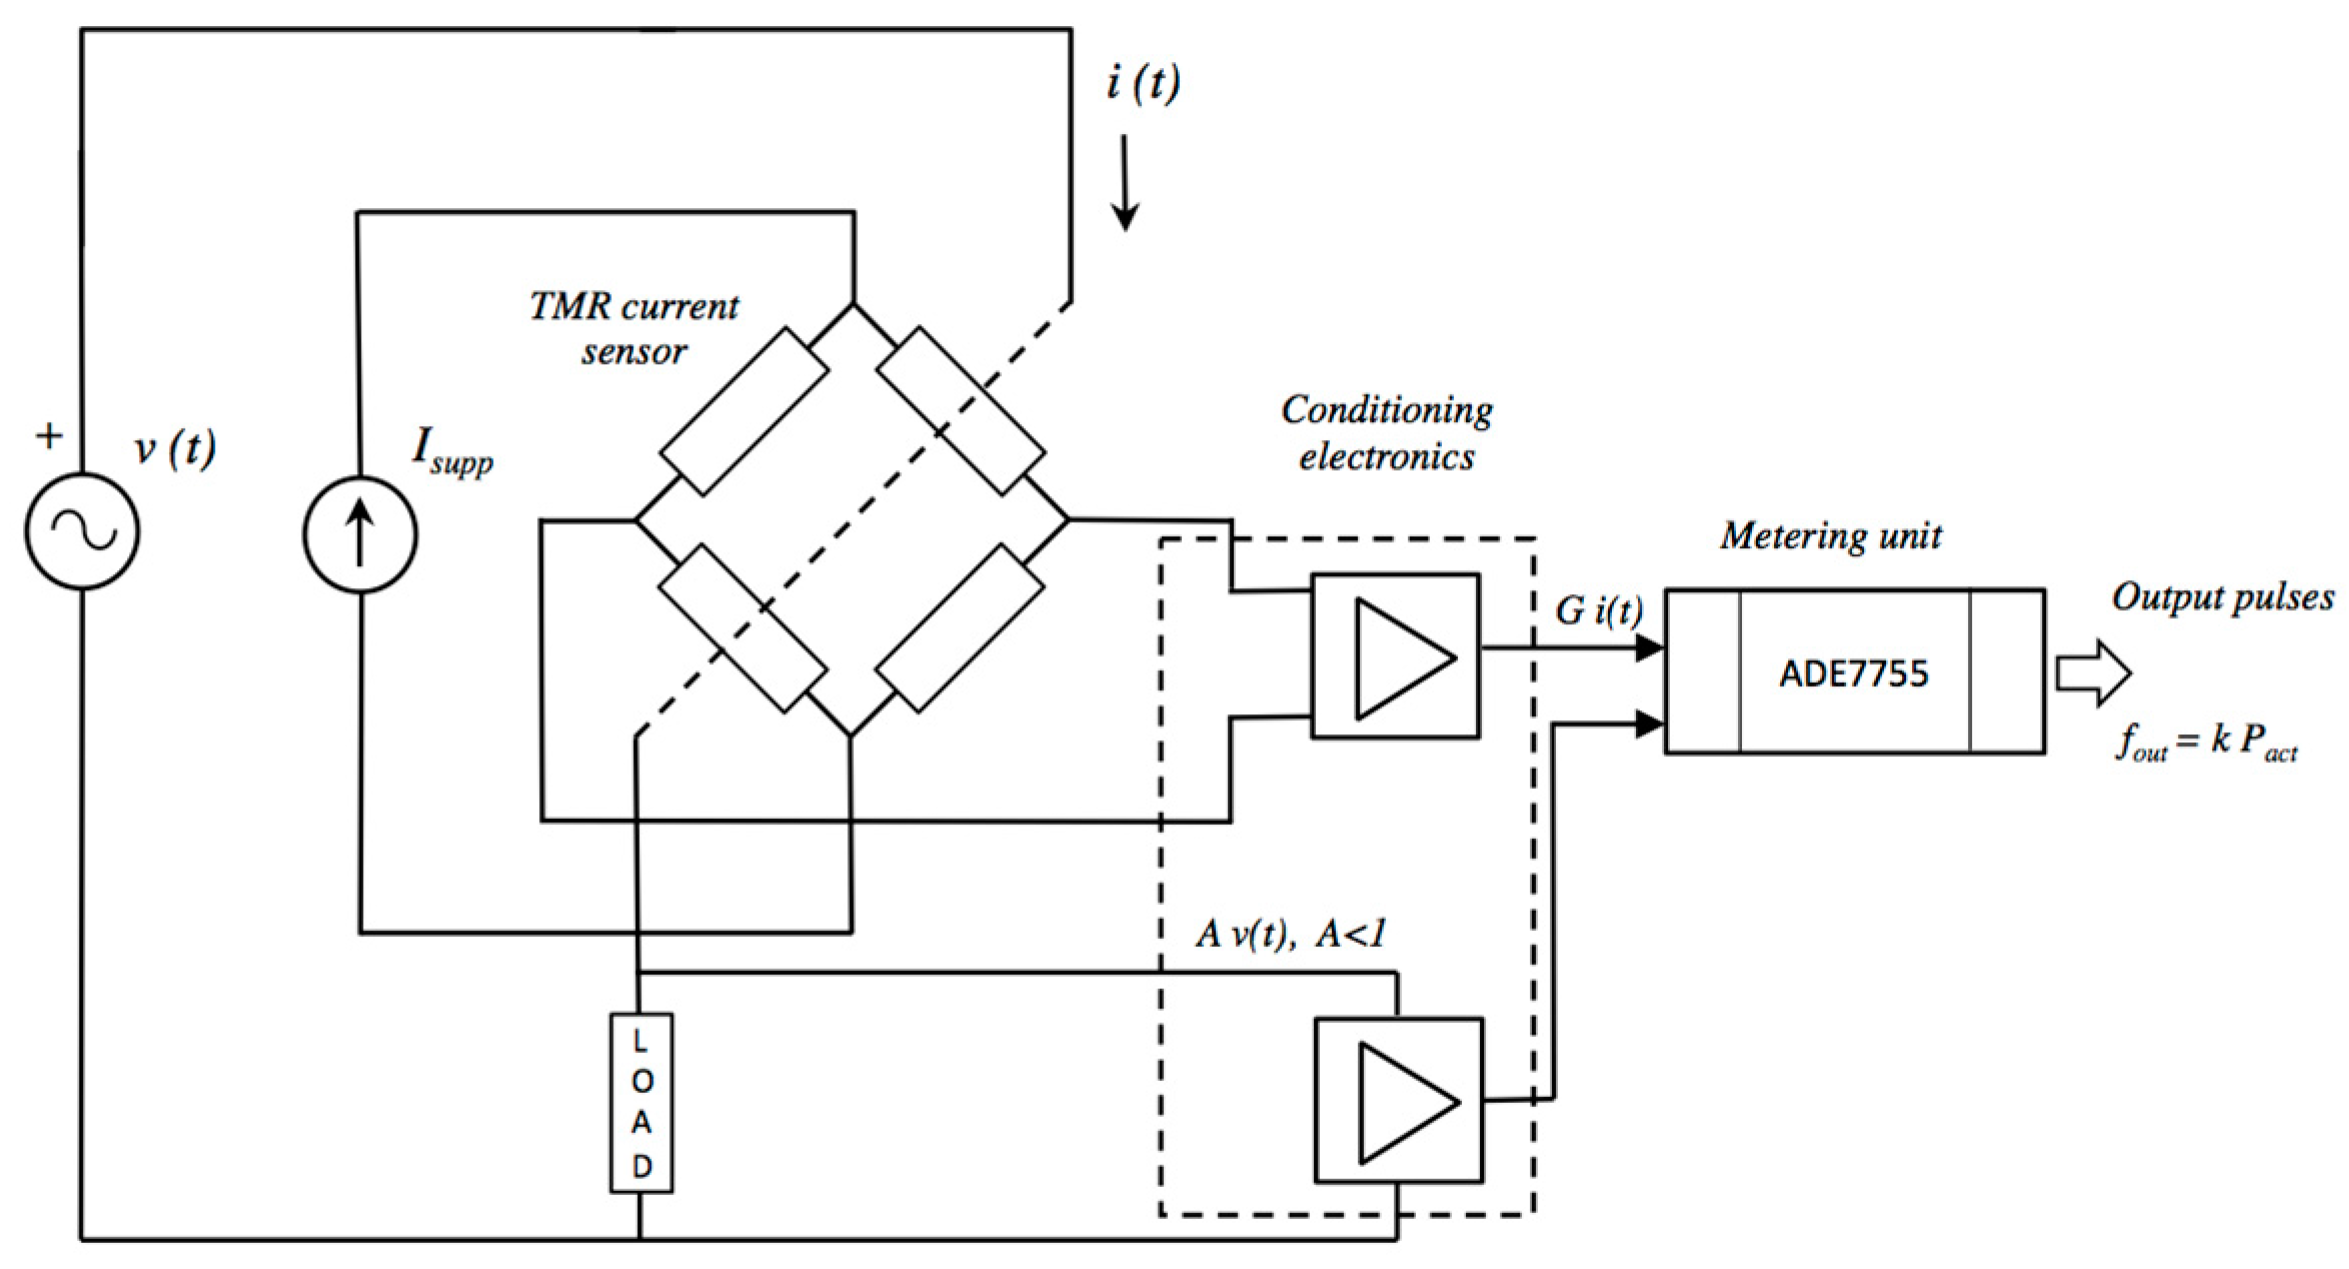 Materials Free Full Text Electronic Energy Meter Based On A Ym 50 Wiring Schematic 10 01134 G005